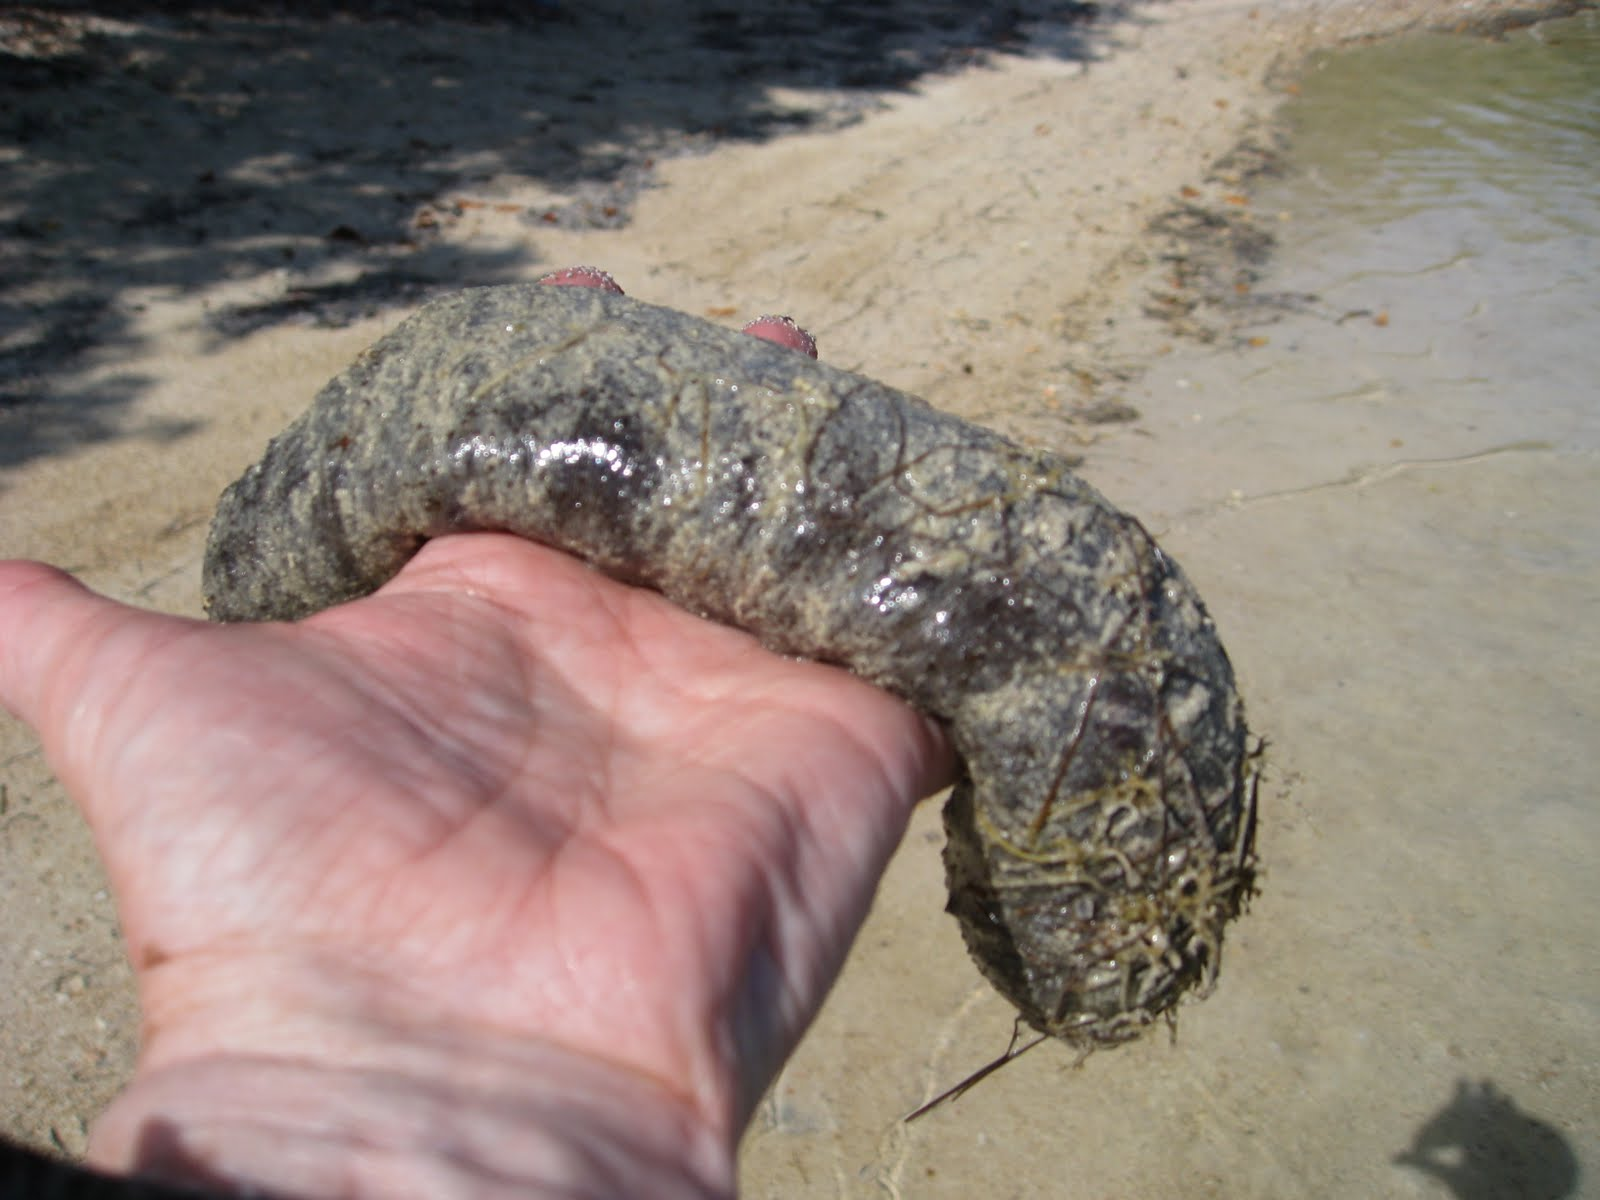 erotic sea cucumber